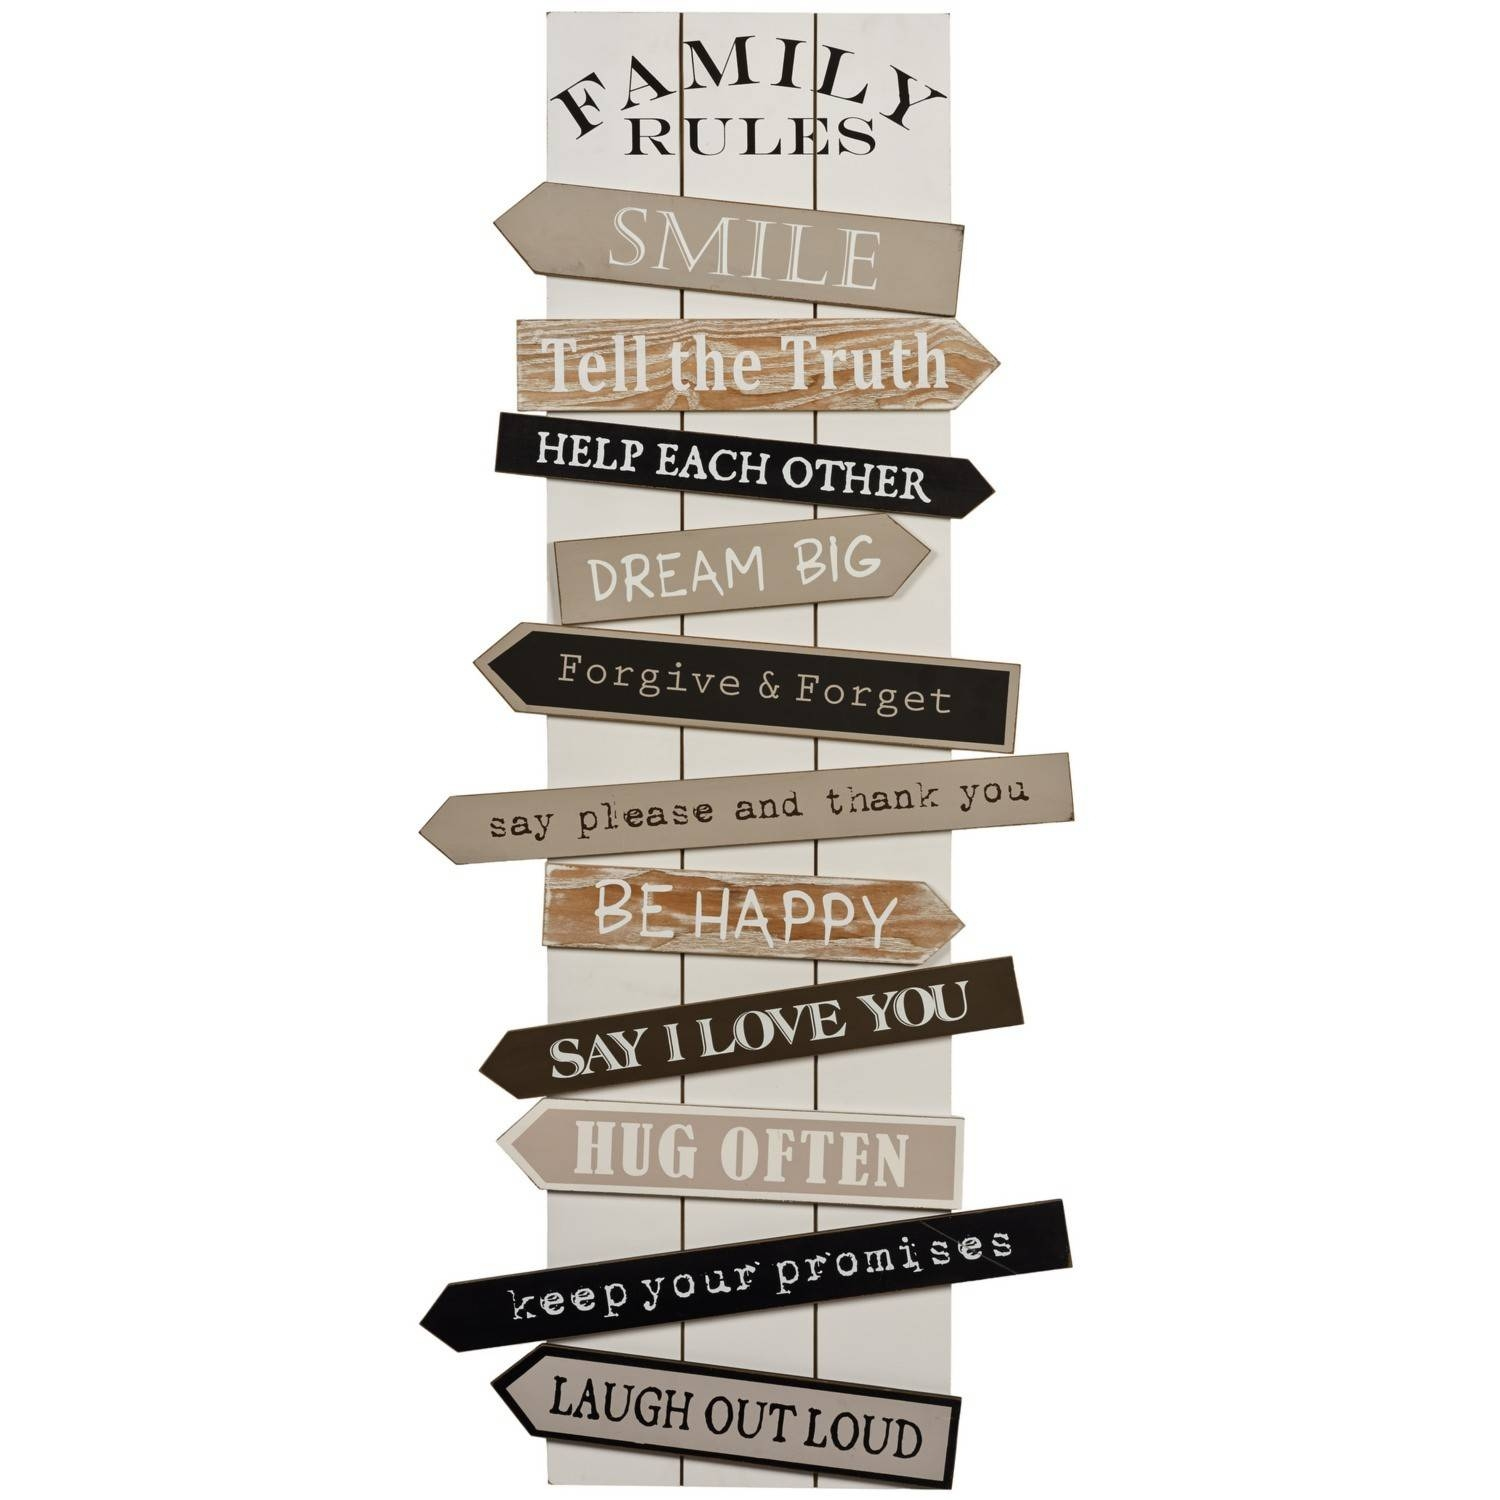 Wall Art Designs: Family Rules Wall Art Vintage Wall Art Wooden Within Most Recently Released Wooden Words Wall Art (View 21 of 30)